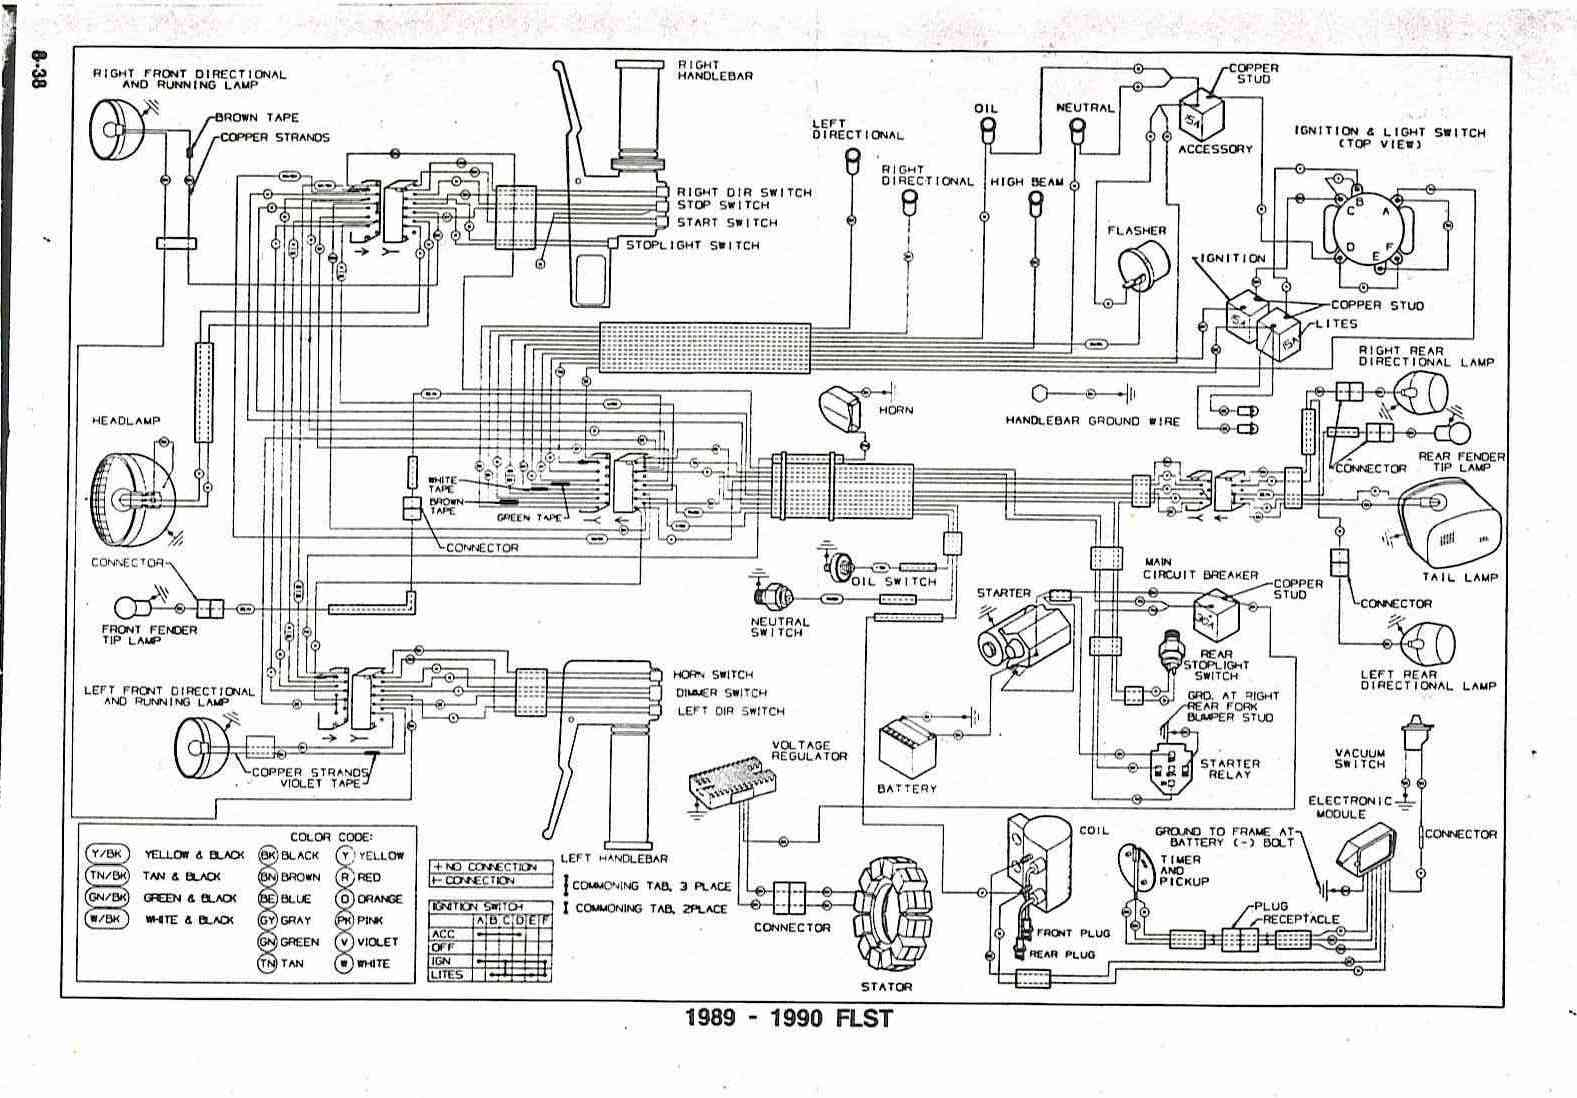 951HD_wireing_schematic2 harley wiring diagrams harley davidson golf cart schematics Wiring Diagrams Harley Panhead at gsmx.co